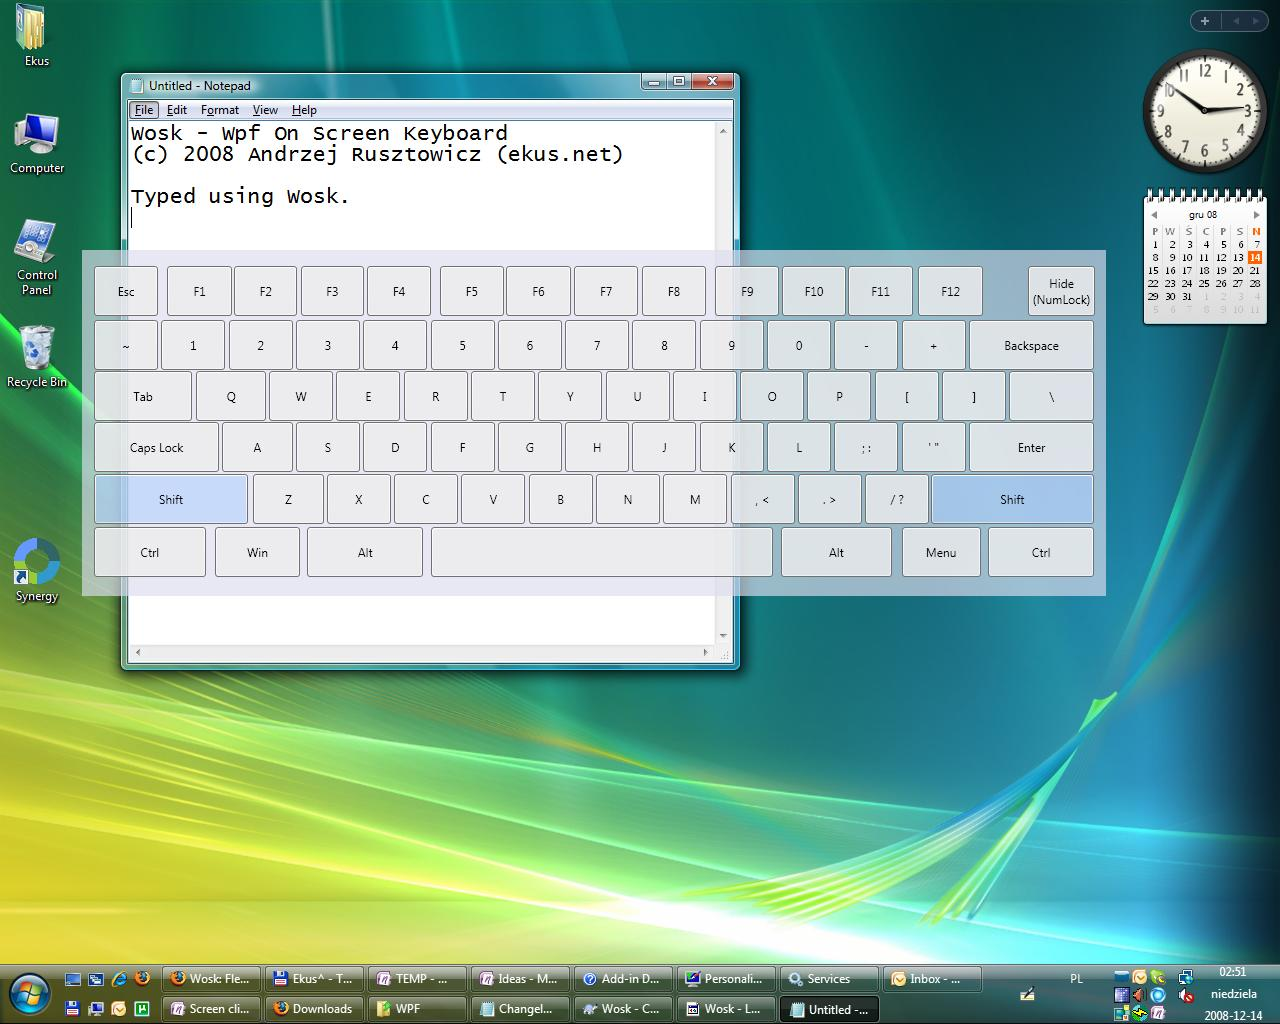 Wosk - Wpf On Screen Keyboard